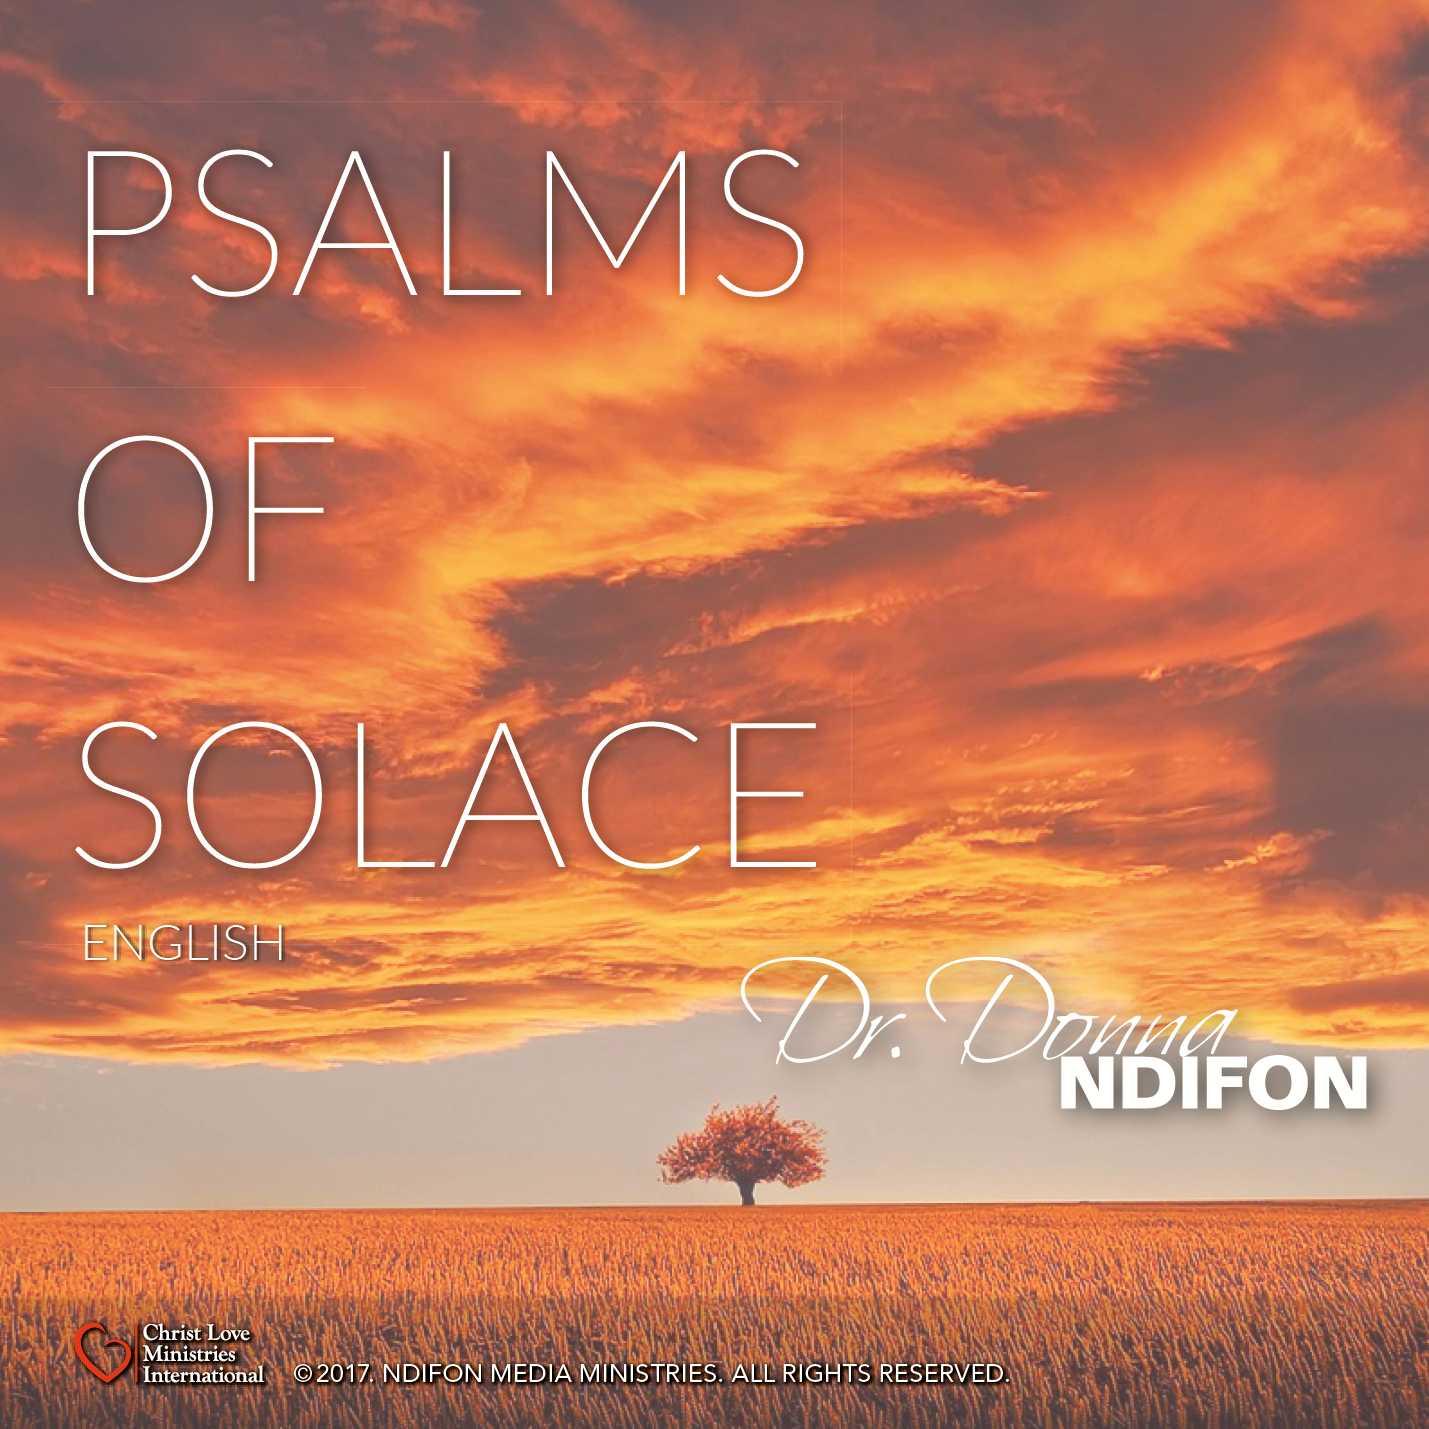 Psalms of Solace